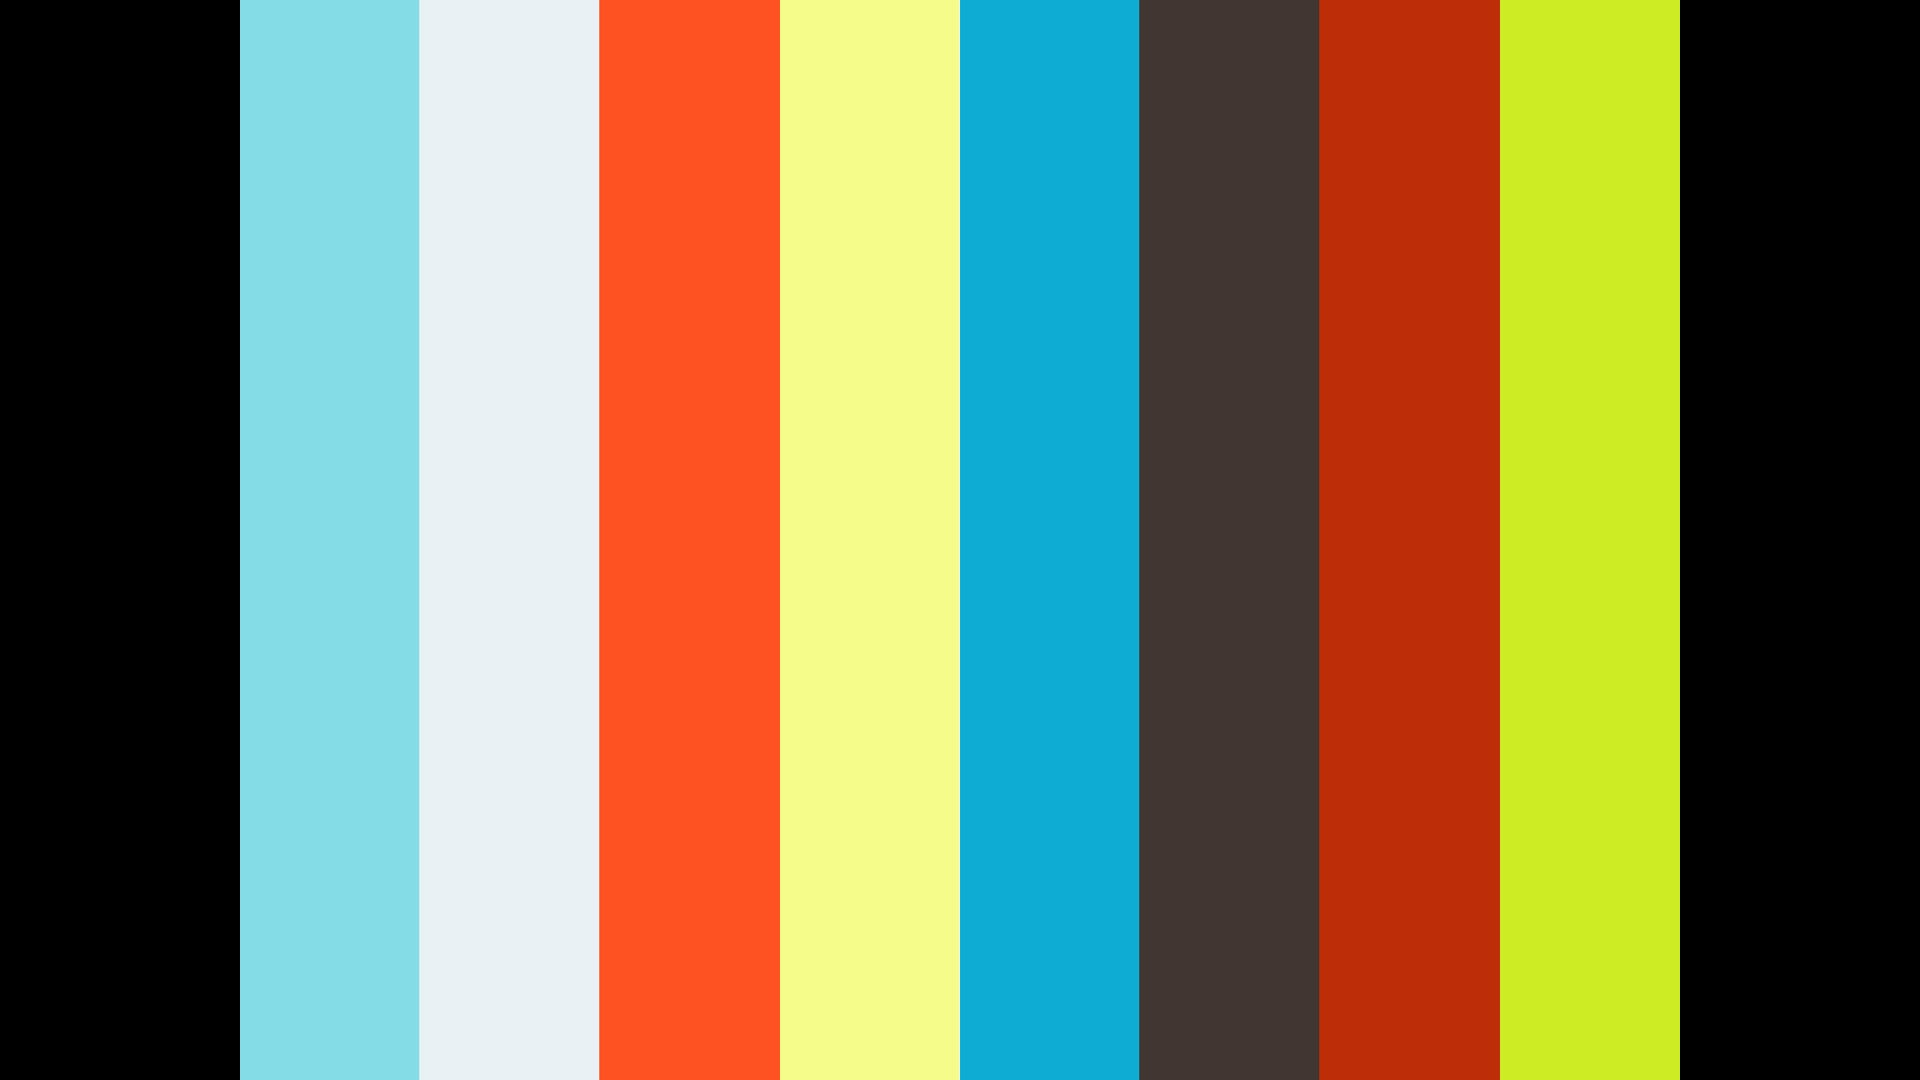 Talk by Ifdal Elsaket (Panel IV)